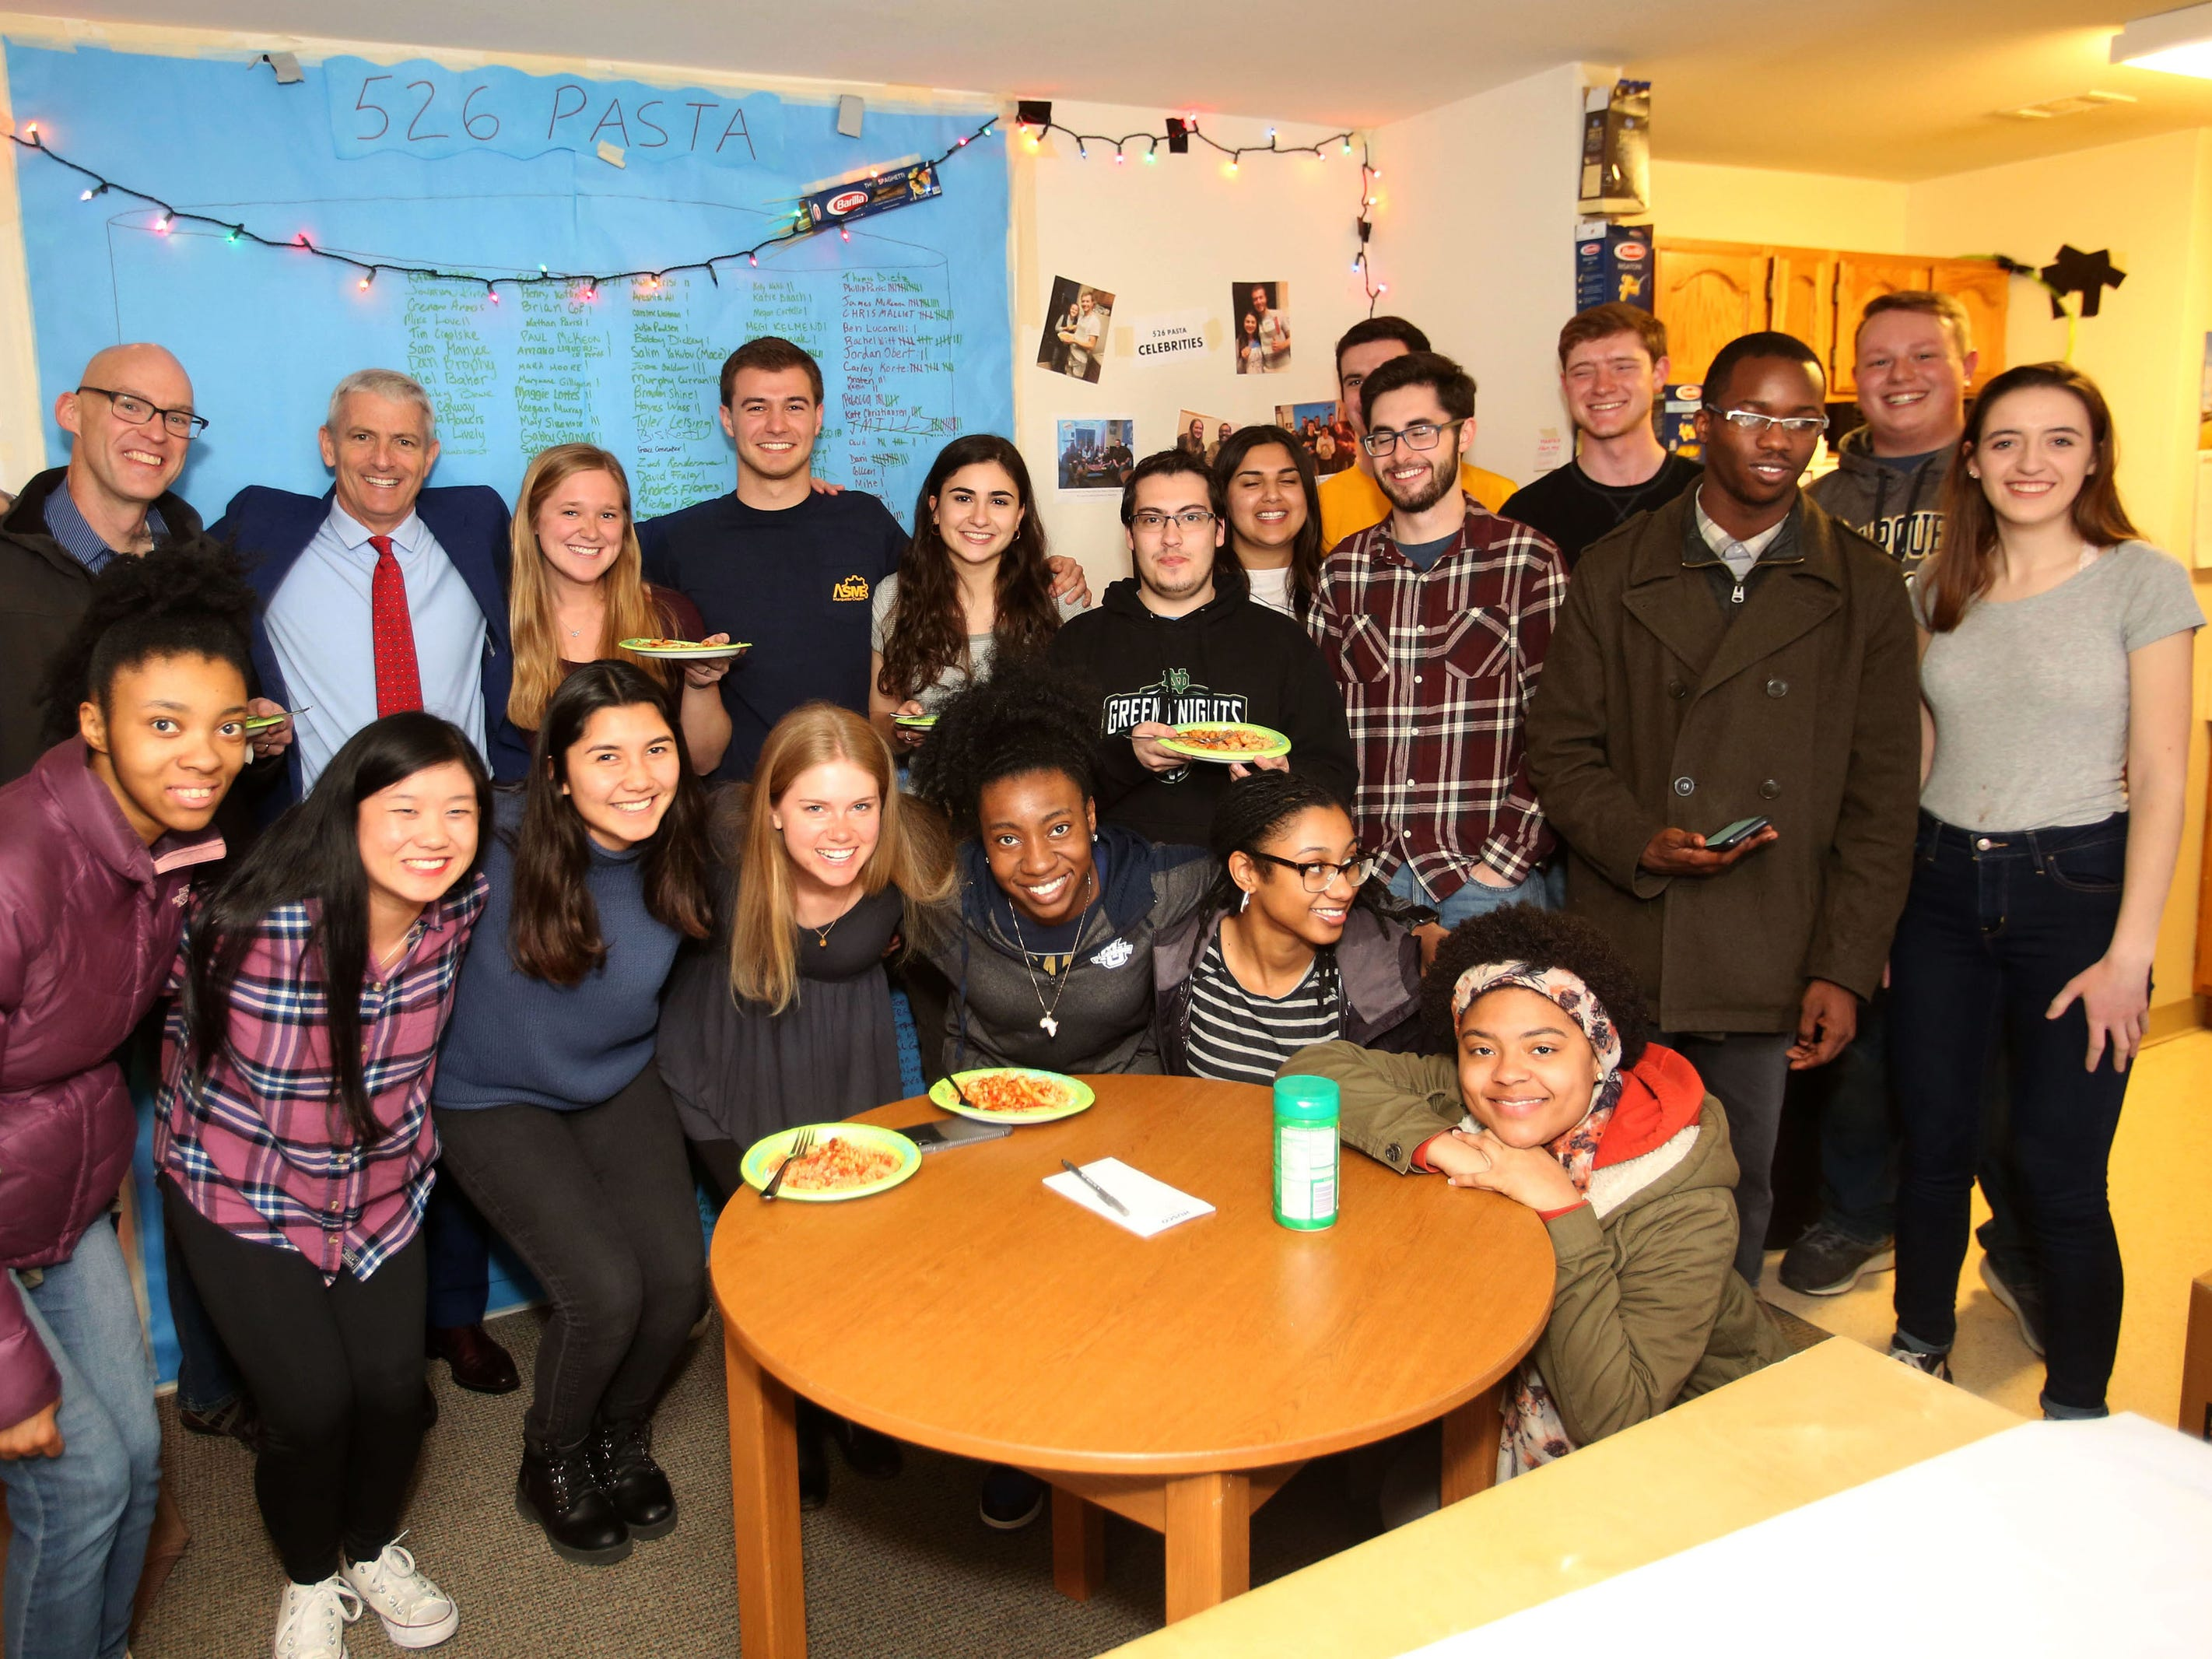 It's not unusual for dozens of Marquette University students and faculty to crowd into the two-bedroom apartment of engineering majors who started a Friday night tradition called 526 Pasta. The goal was to meet 526 new people during senior year by serving up free pasta. Why 526? It's their apartment number.